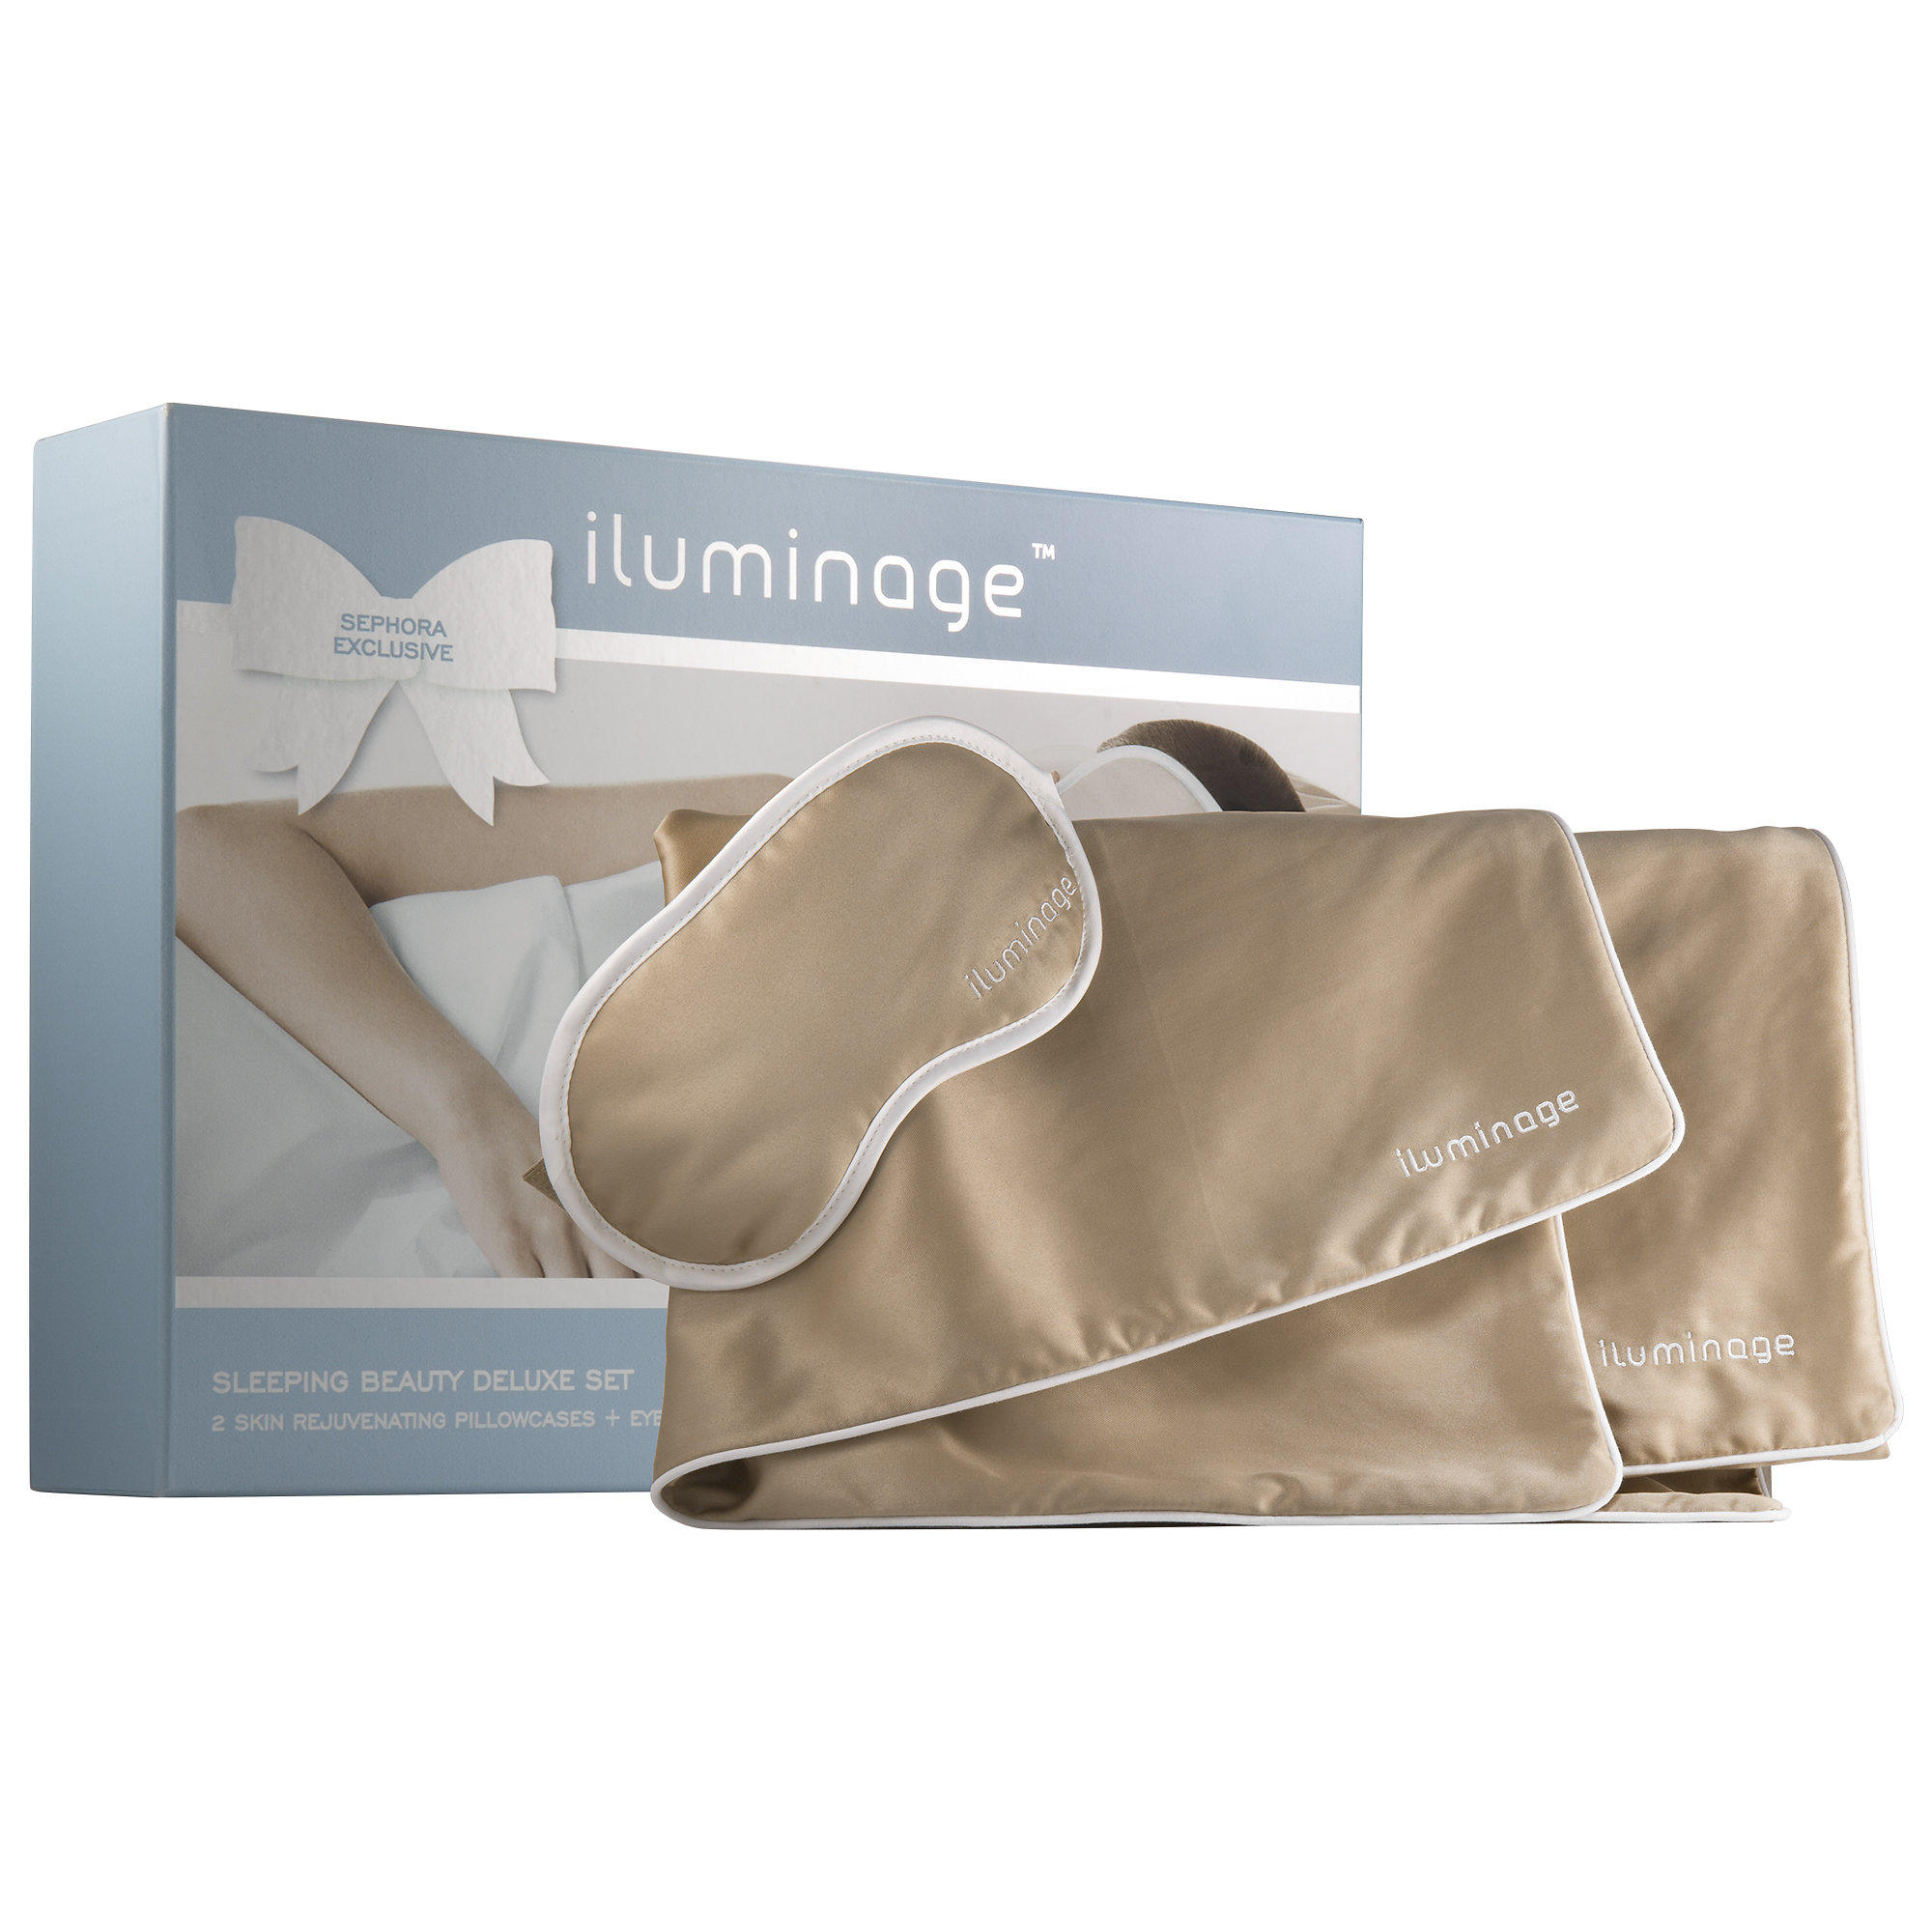 New Release iluminage launched New Sleeping Beauty Deluxe Set